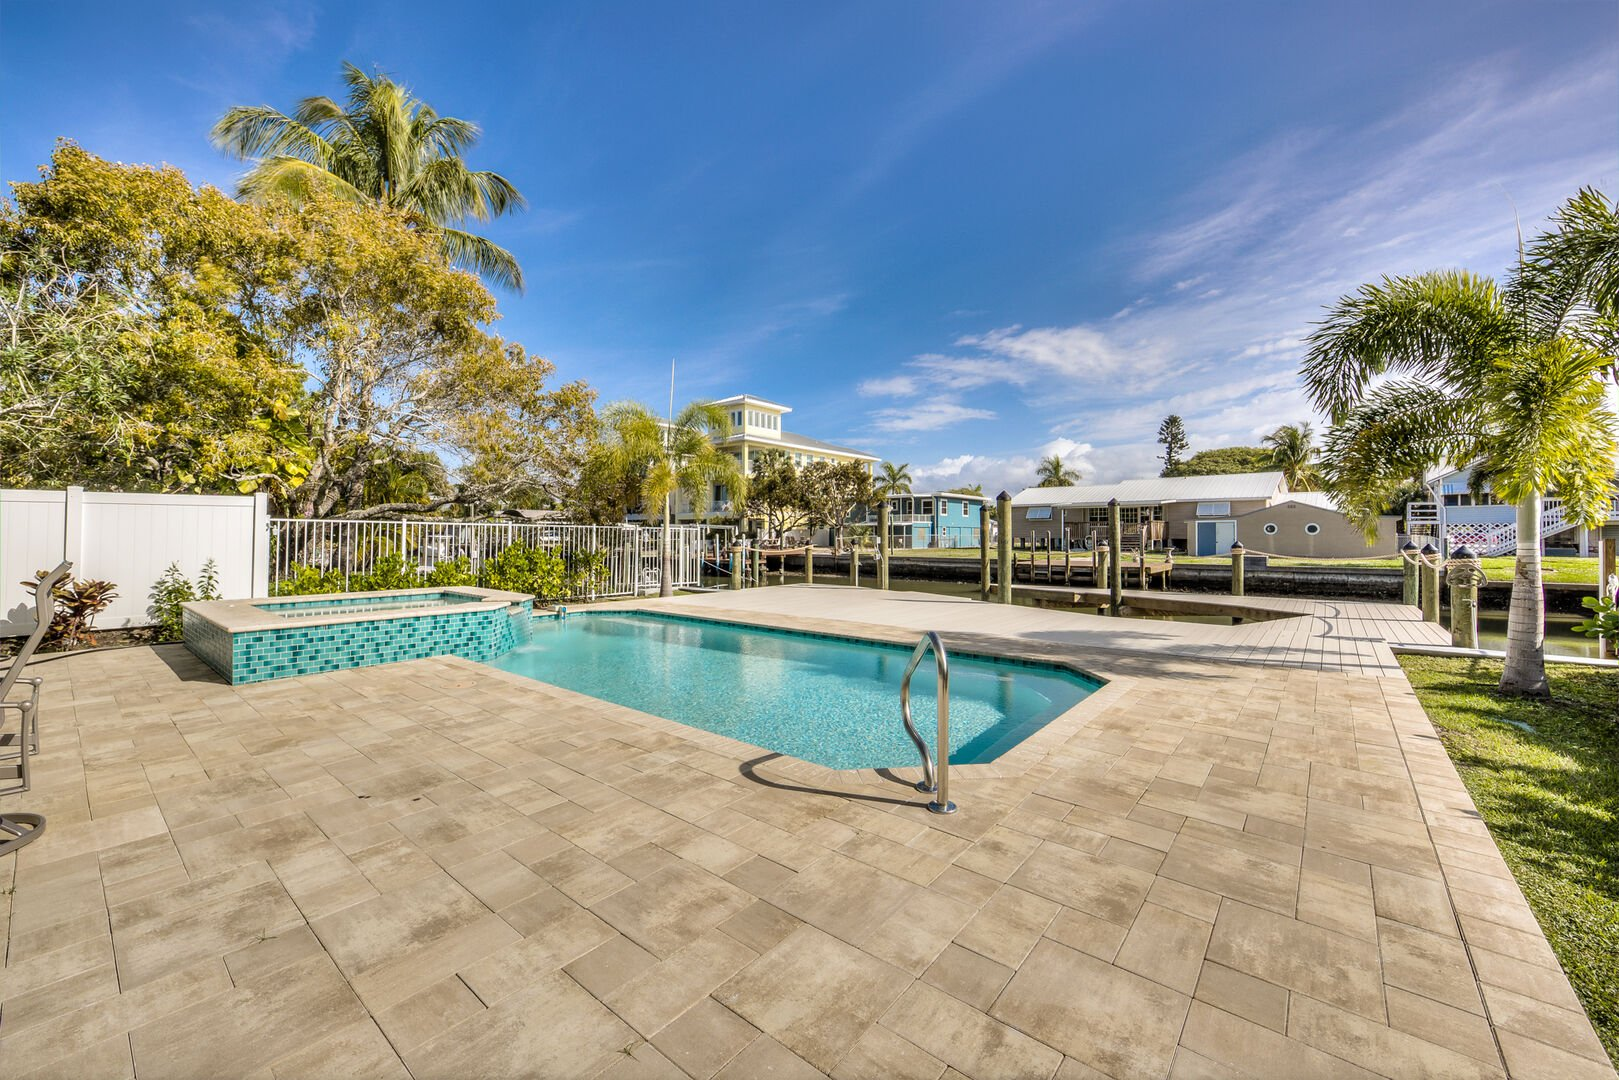 Pool and Hot Tub at Vacation Home Rental In Fort Myers Beach Florida